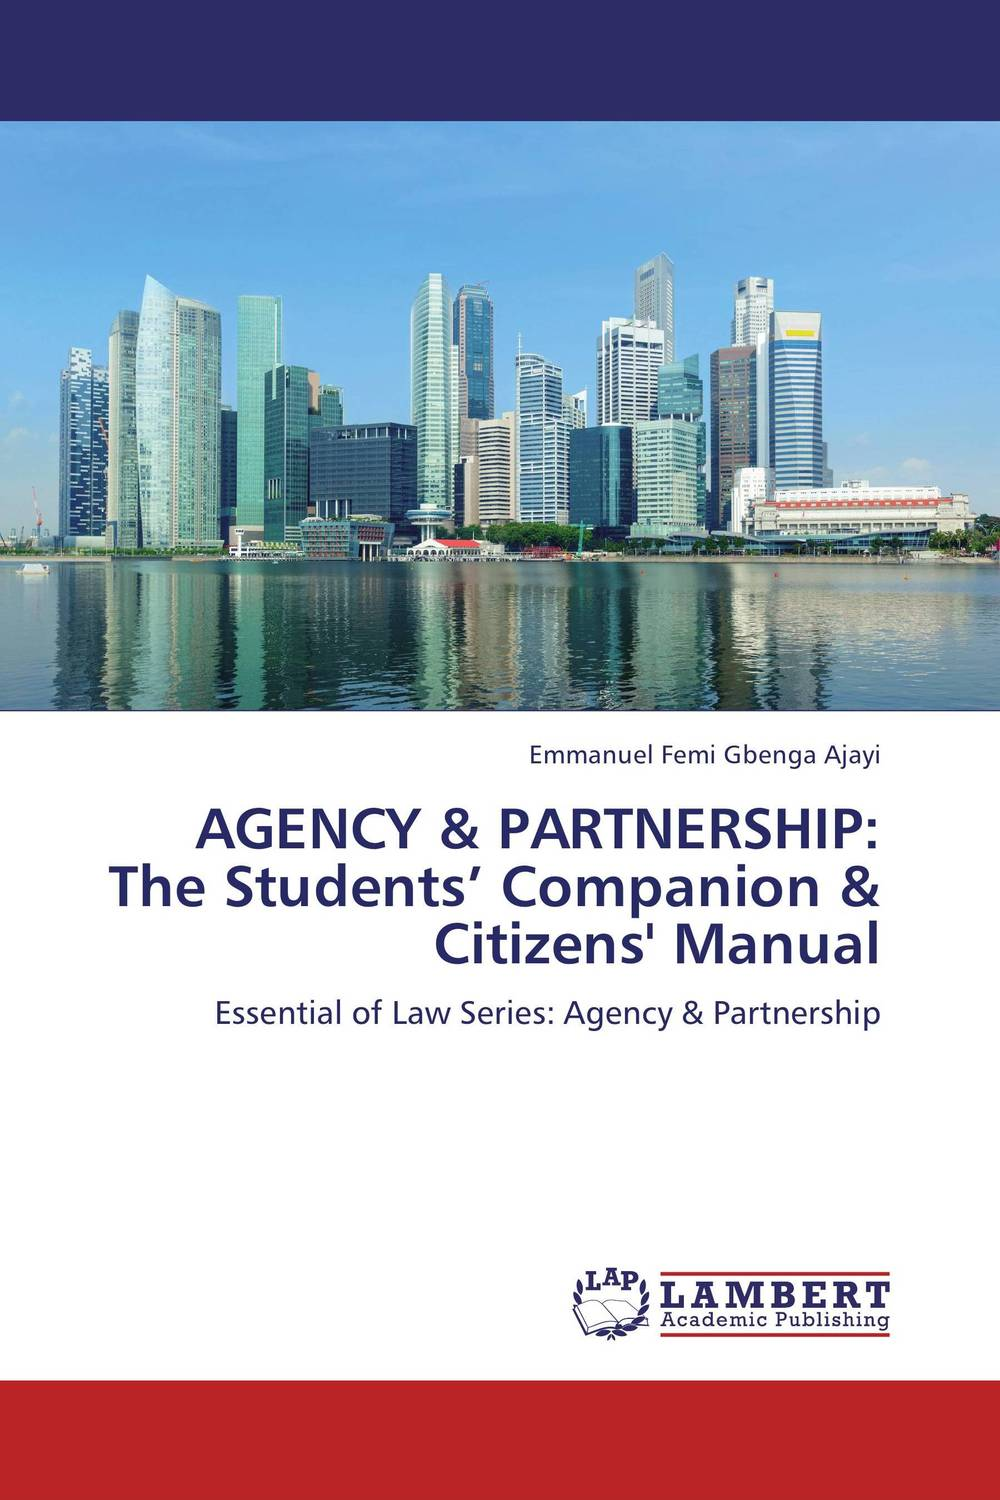 AGENCY & PARTNERSHIP: The Students' Companion & Citizens' Manual seeing things as they are